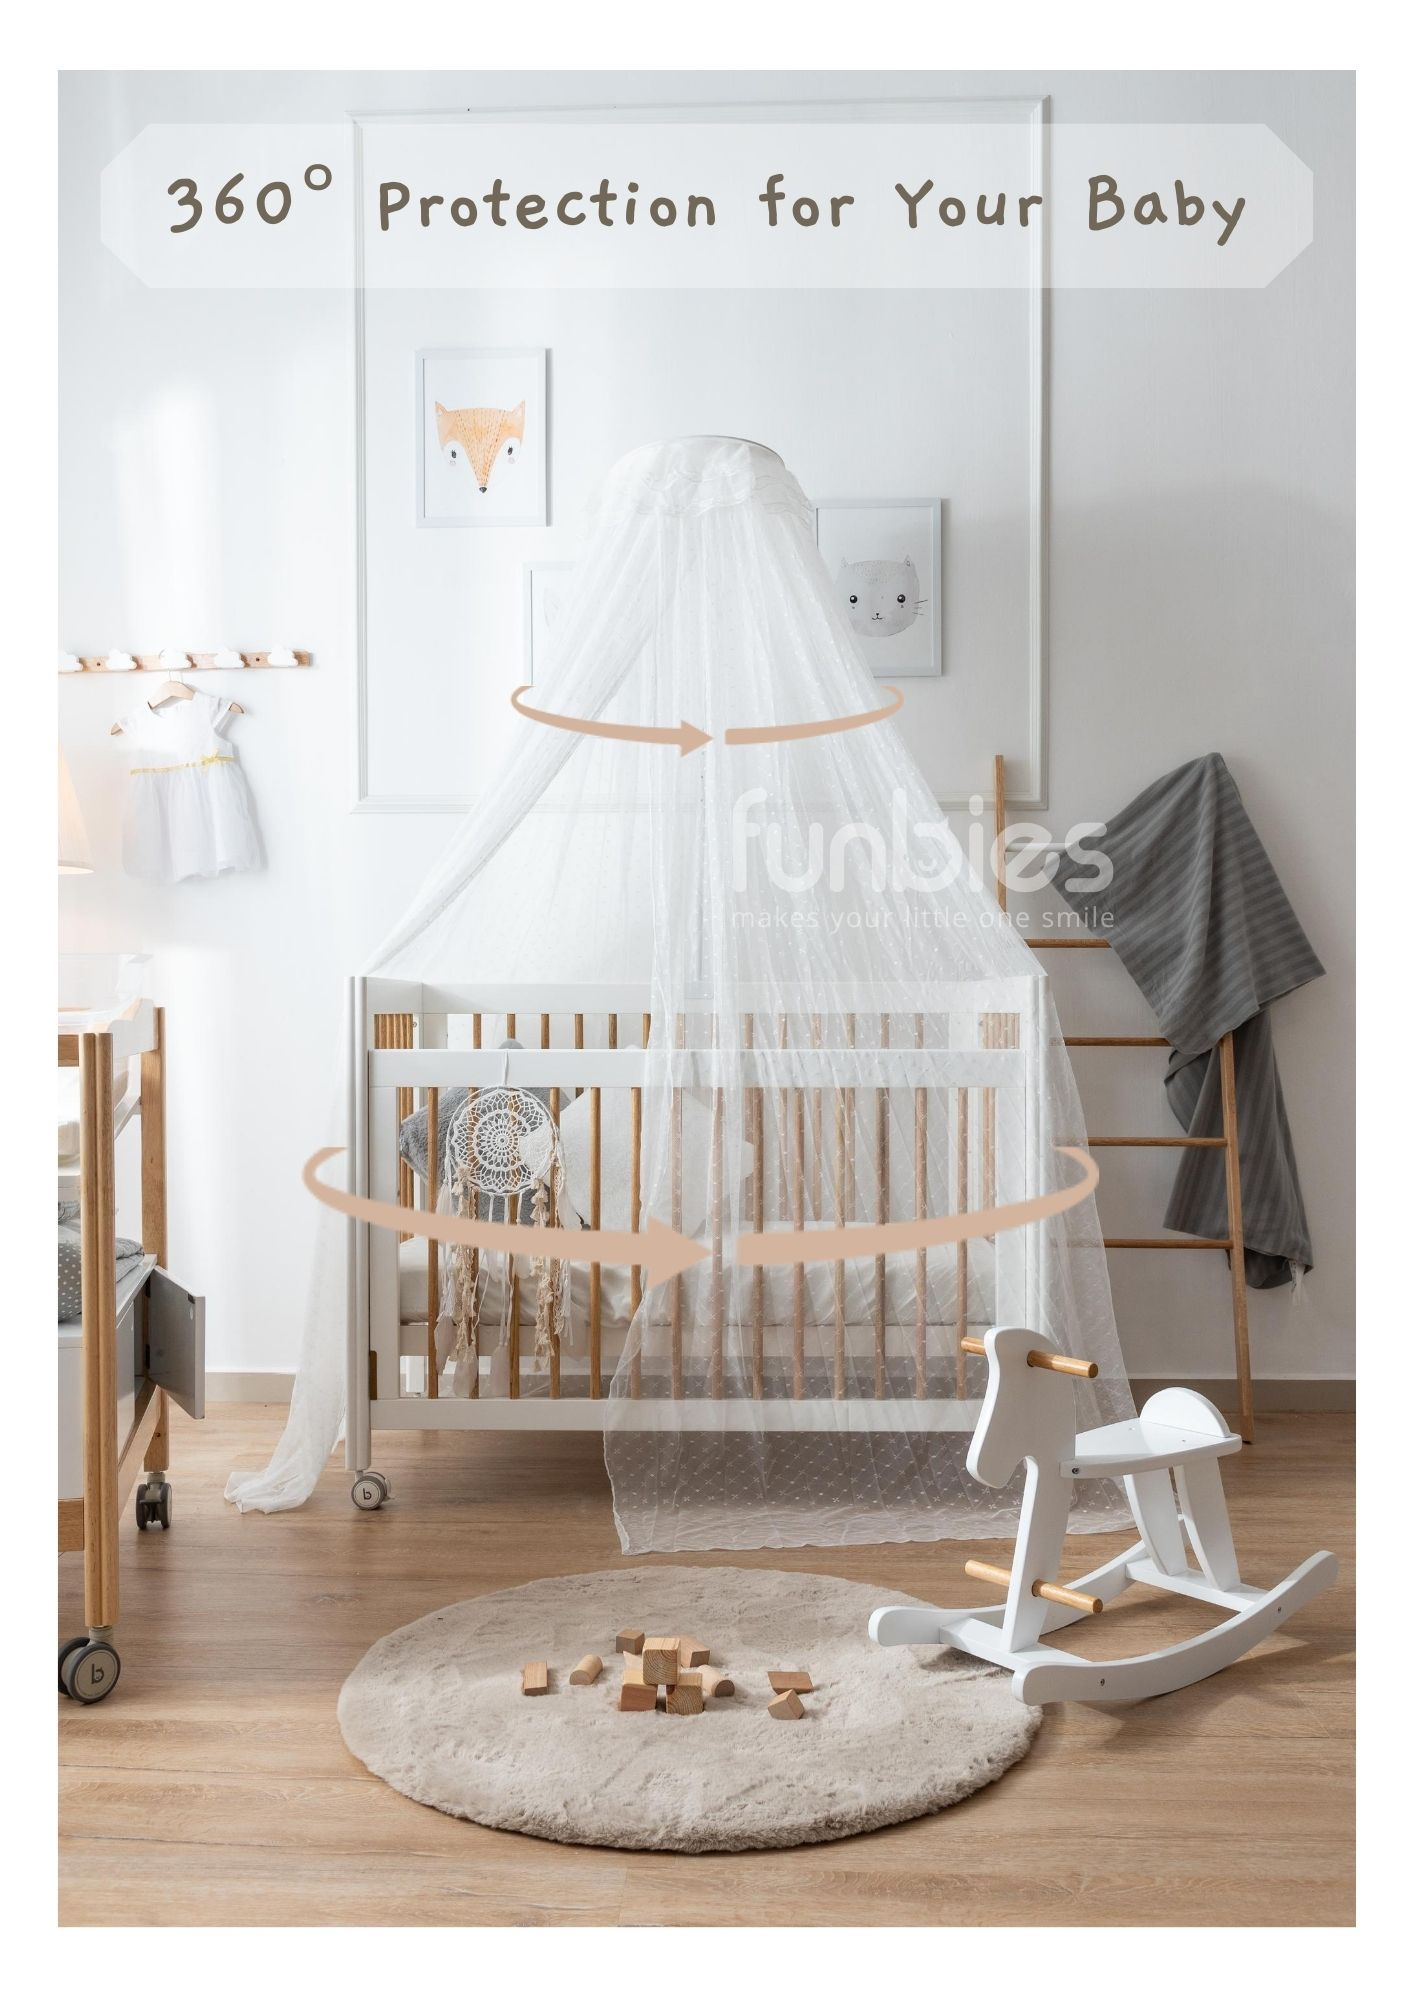 Funbies Mosquito Net with Stand